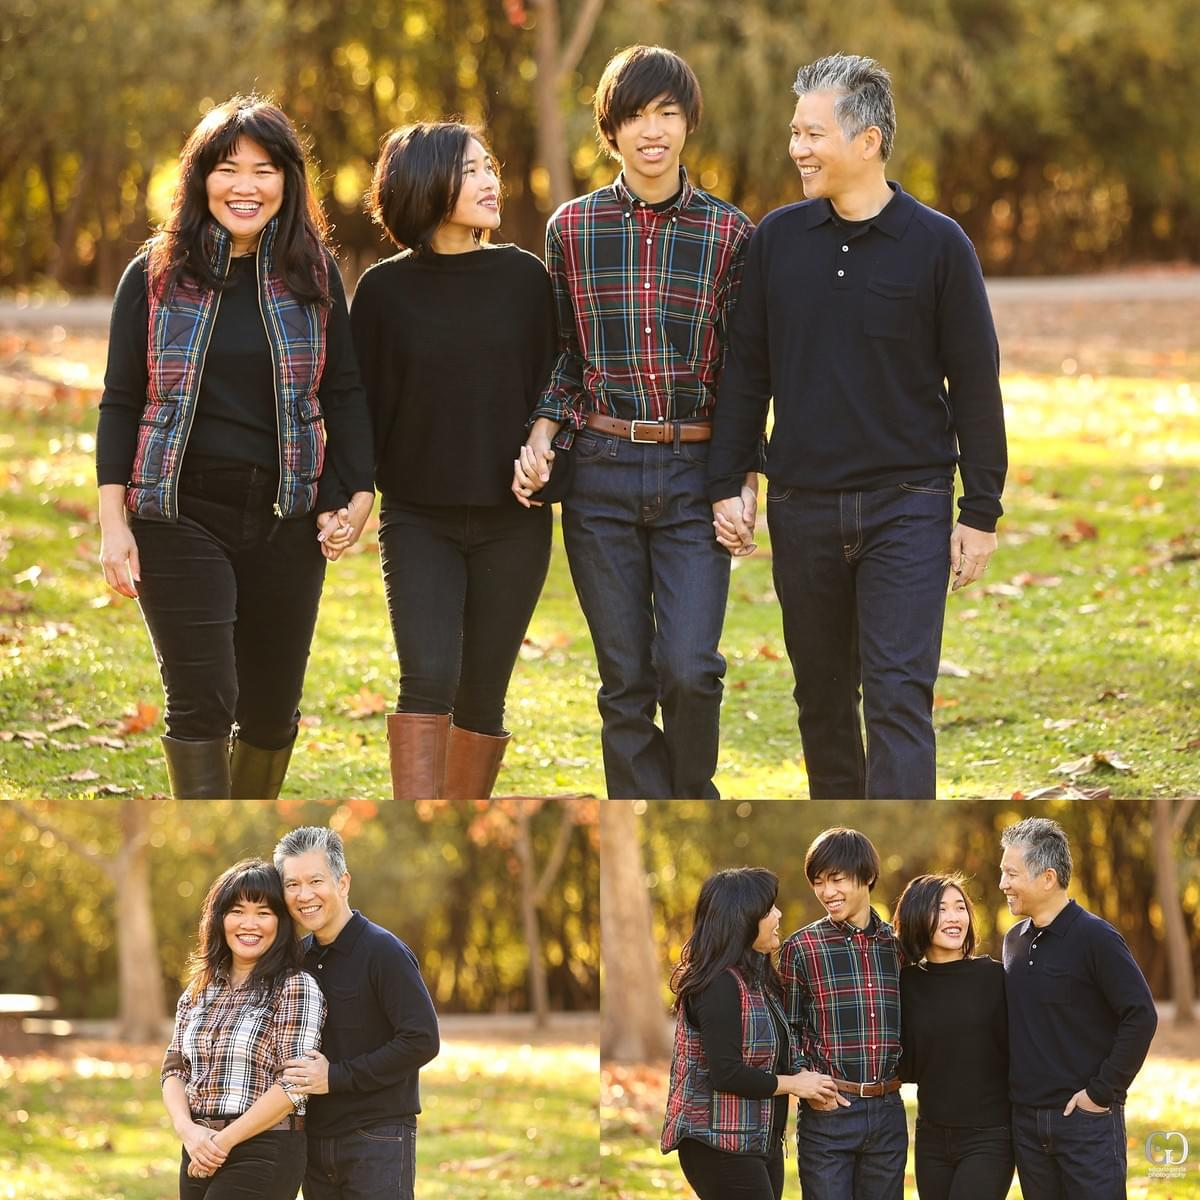 san jose family portrait photographer los gatos vasona park sf bay area